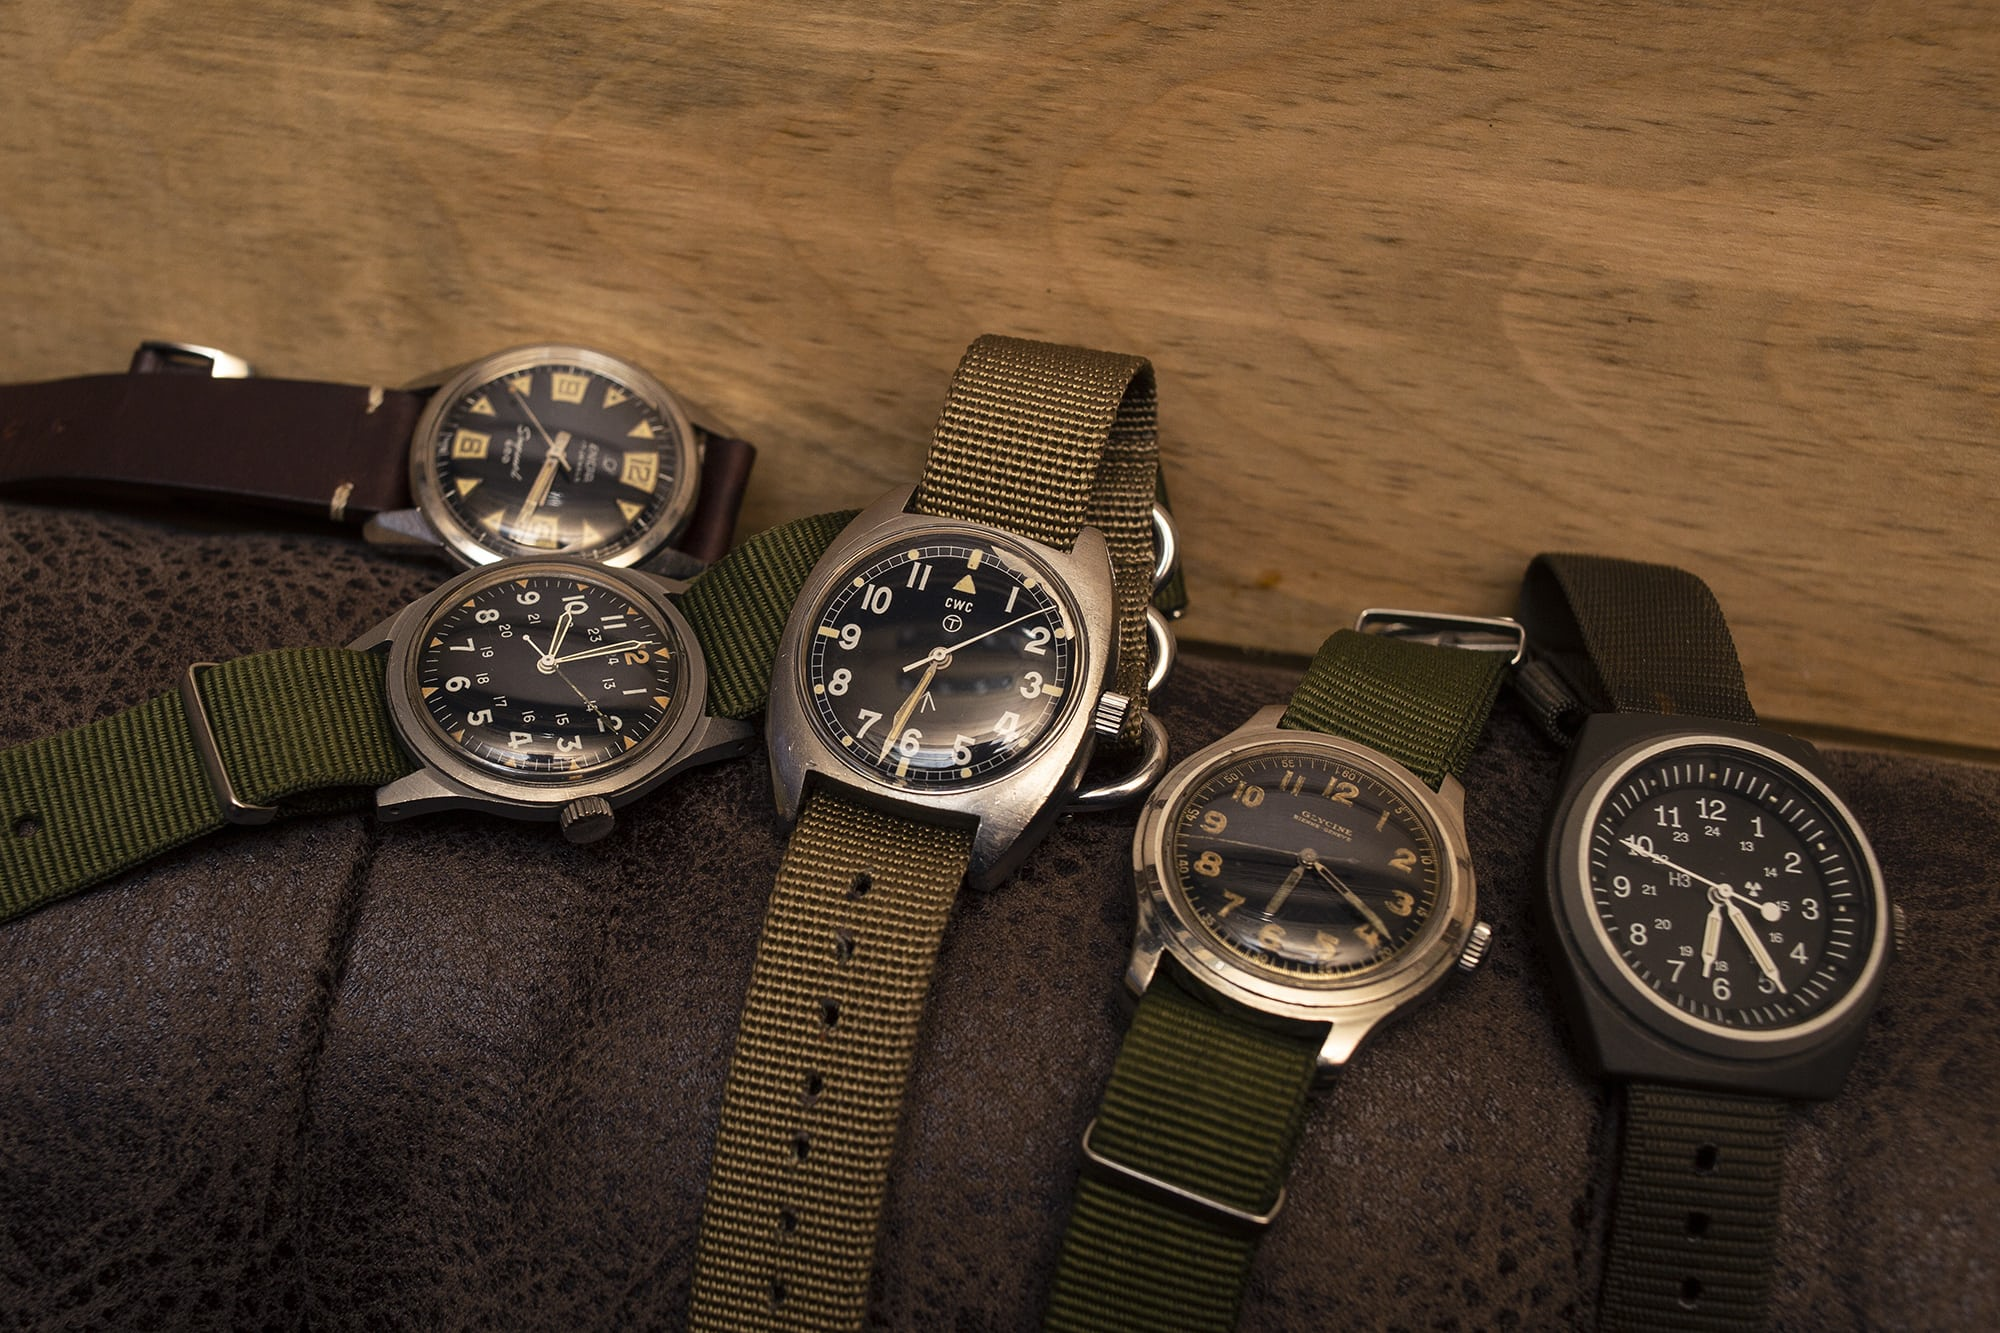 Photo Report: The Fall 2018 HODINKEE Meet-Up In New York City 20010218 2